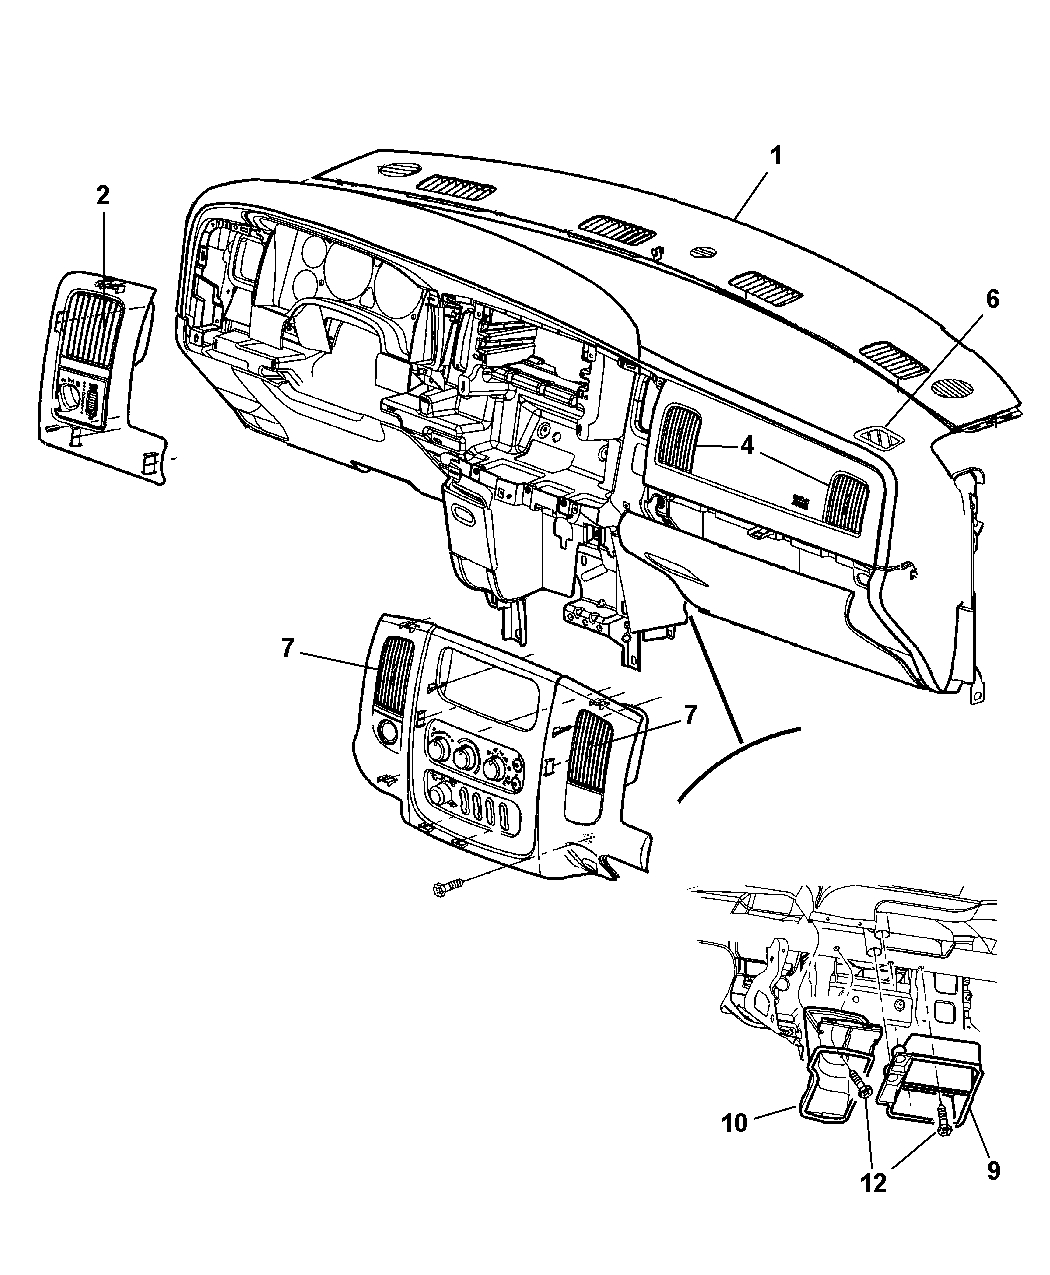 dodge ram front end diagram spst lighted switch wiring 2002 1500 parts automotive